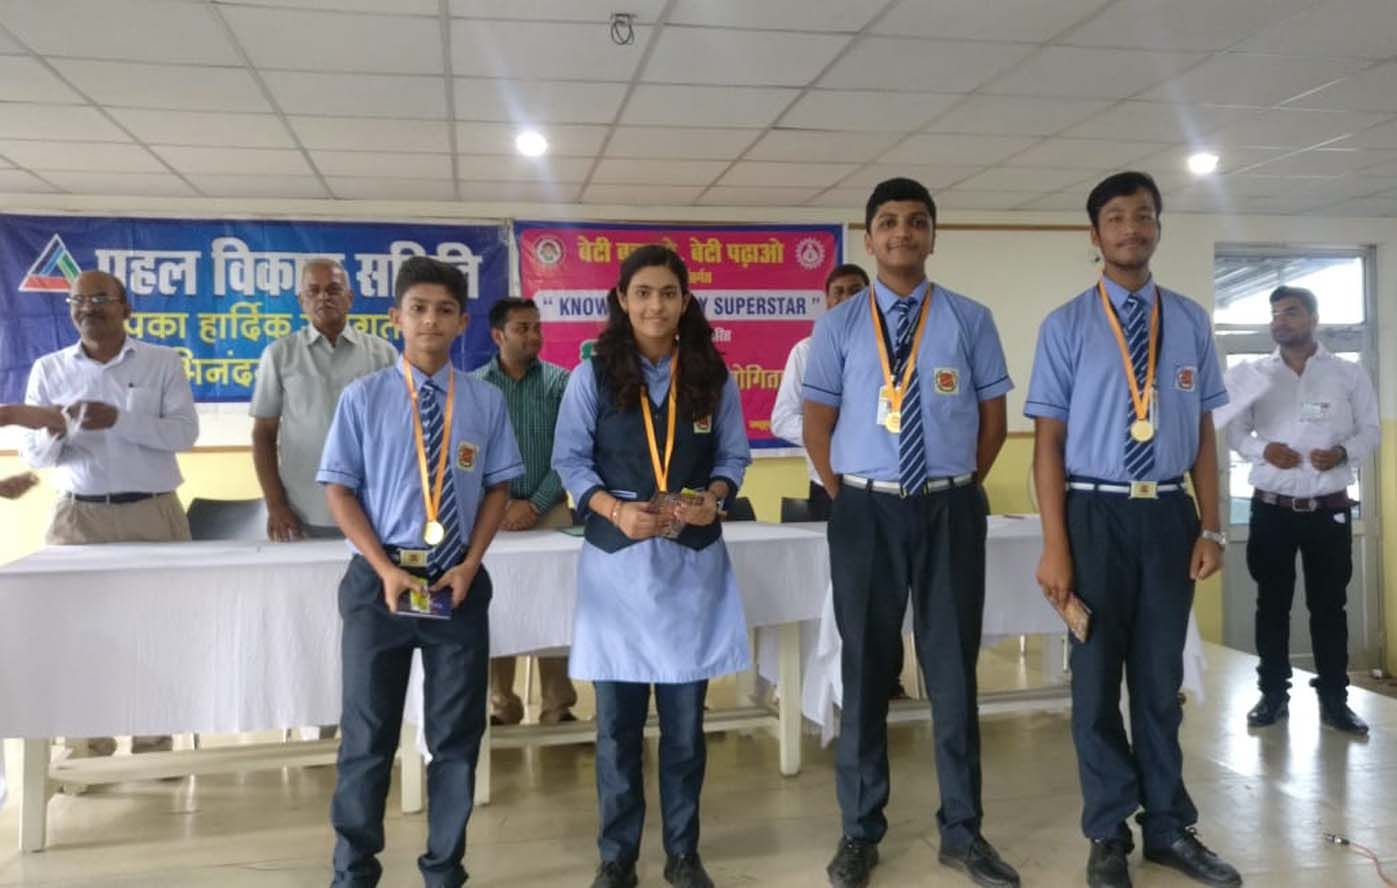 Quiz Comptition Orginized by Pahal Group